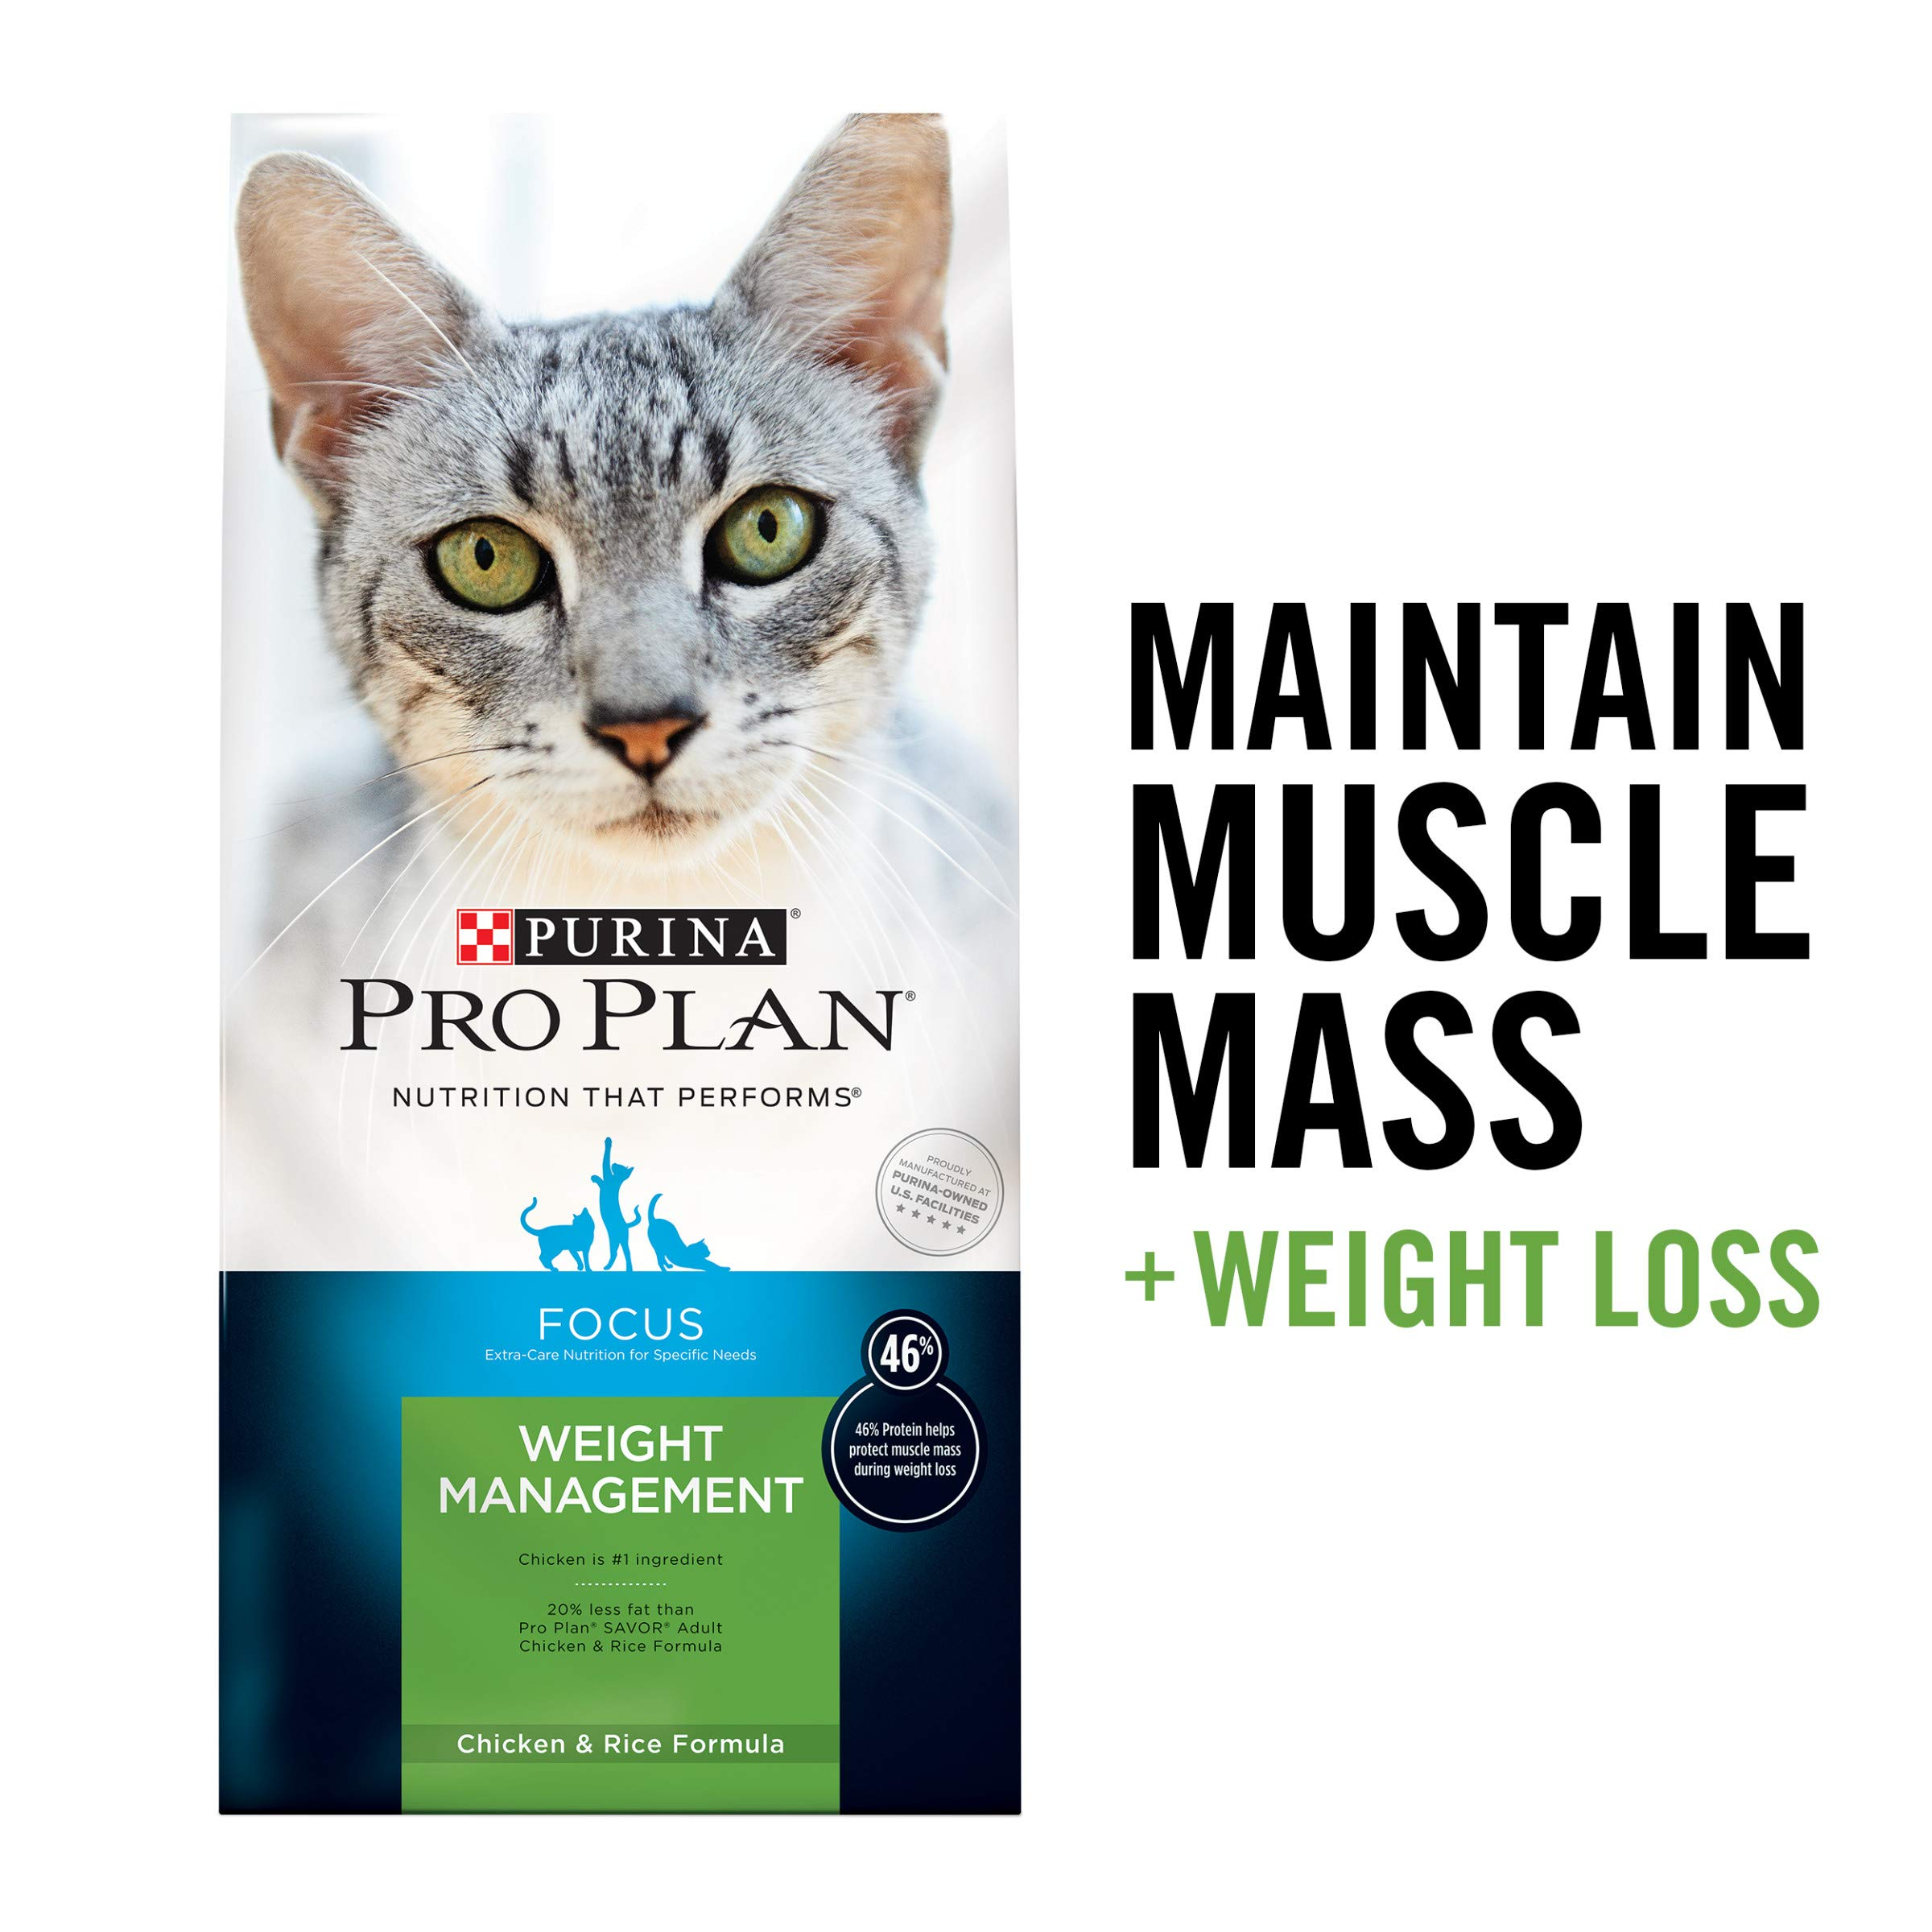 Purina Pro Plan Weight Control High Protein Dry Cat Food, FOCUS Weight Management Chicken & Rice Formula - 16 lb. Bag by PURINA Pro Plan